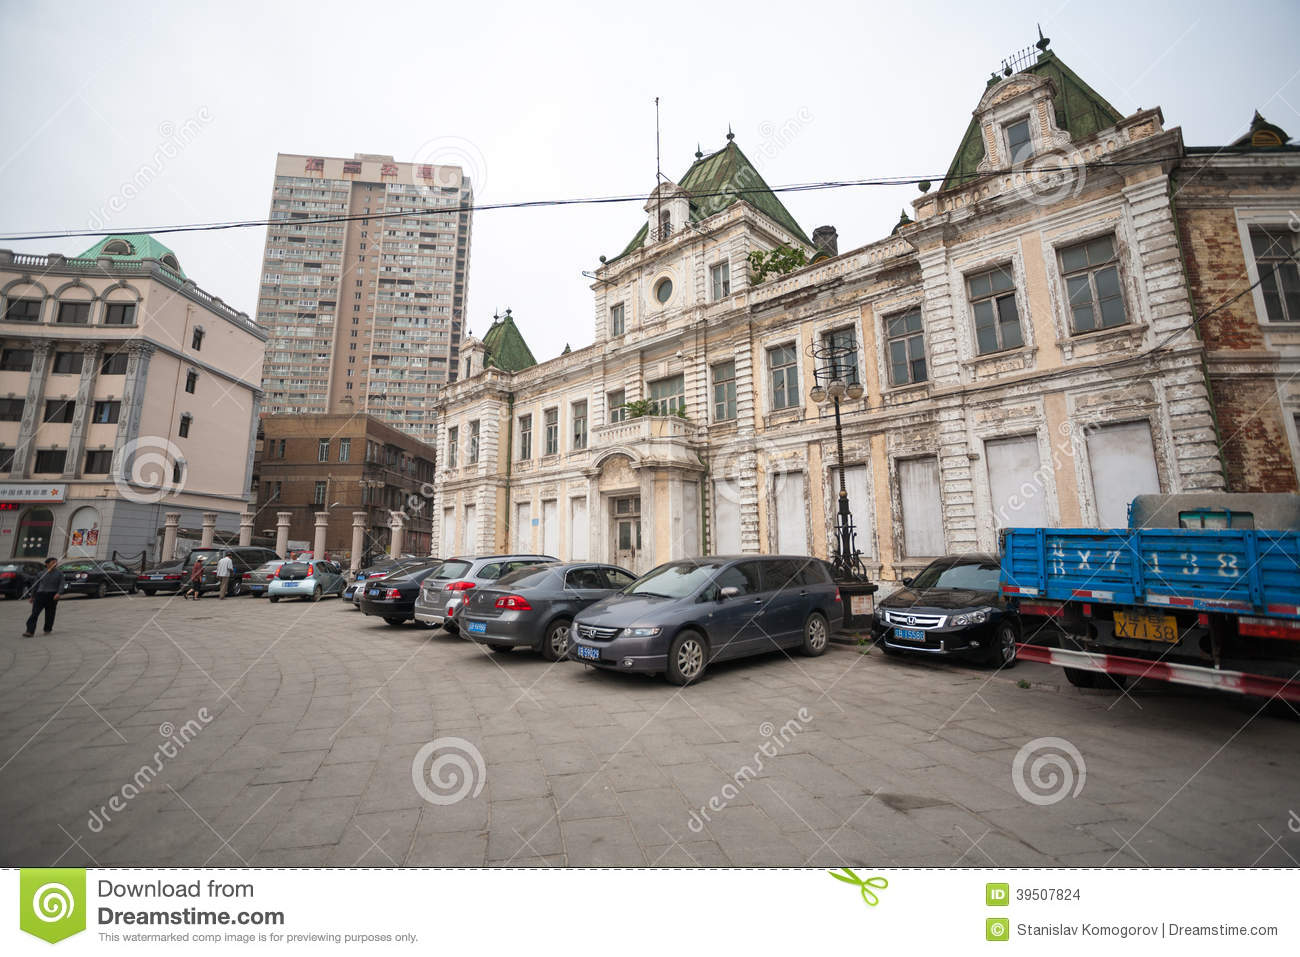 Russian street in the Dalian, China